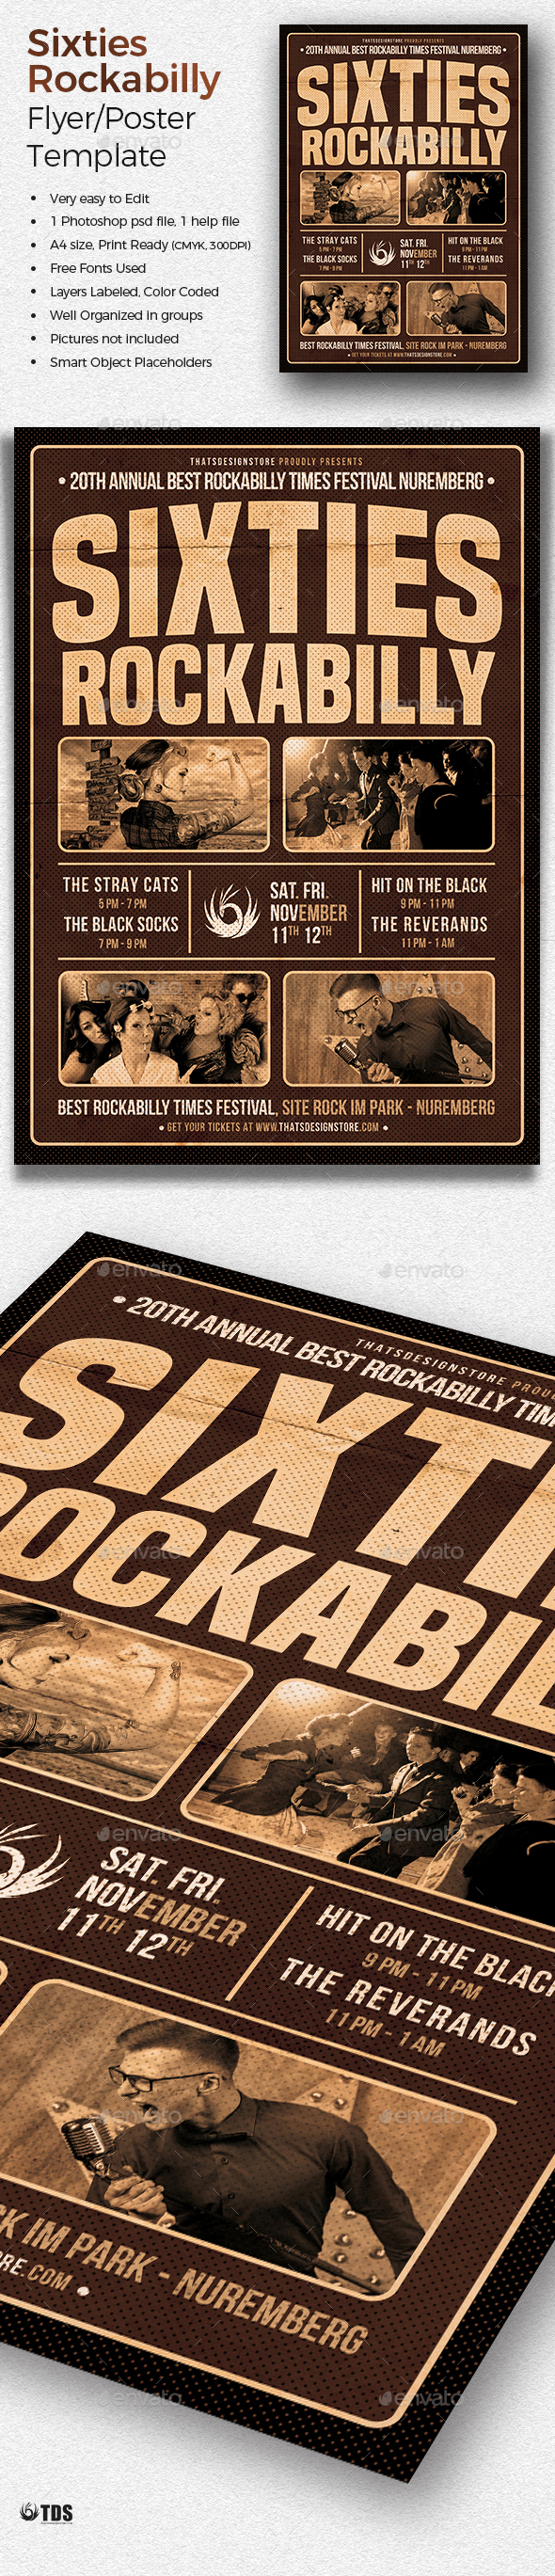 Sixties Rockabilly Flyer Template - Concerts Events